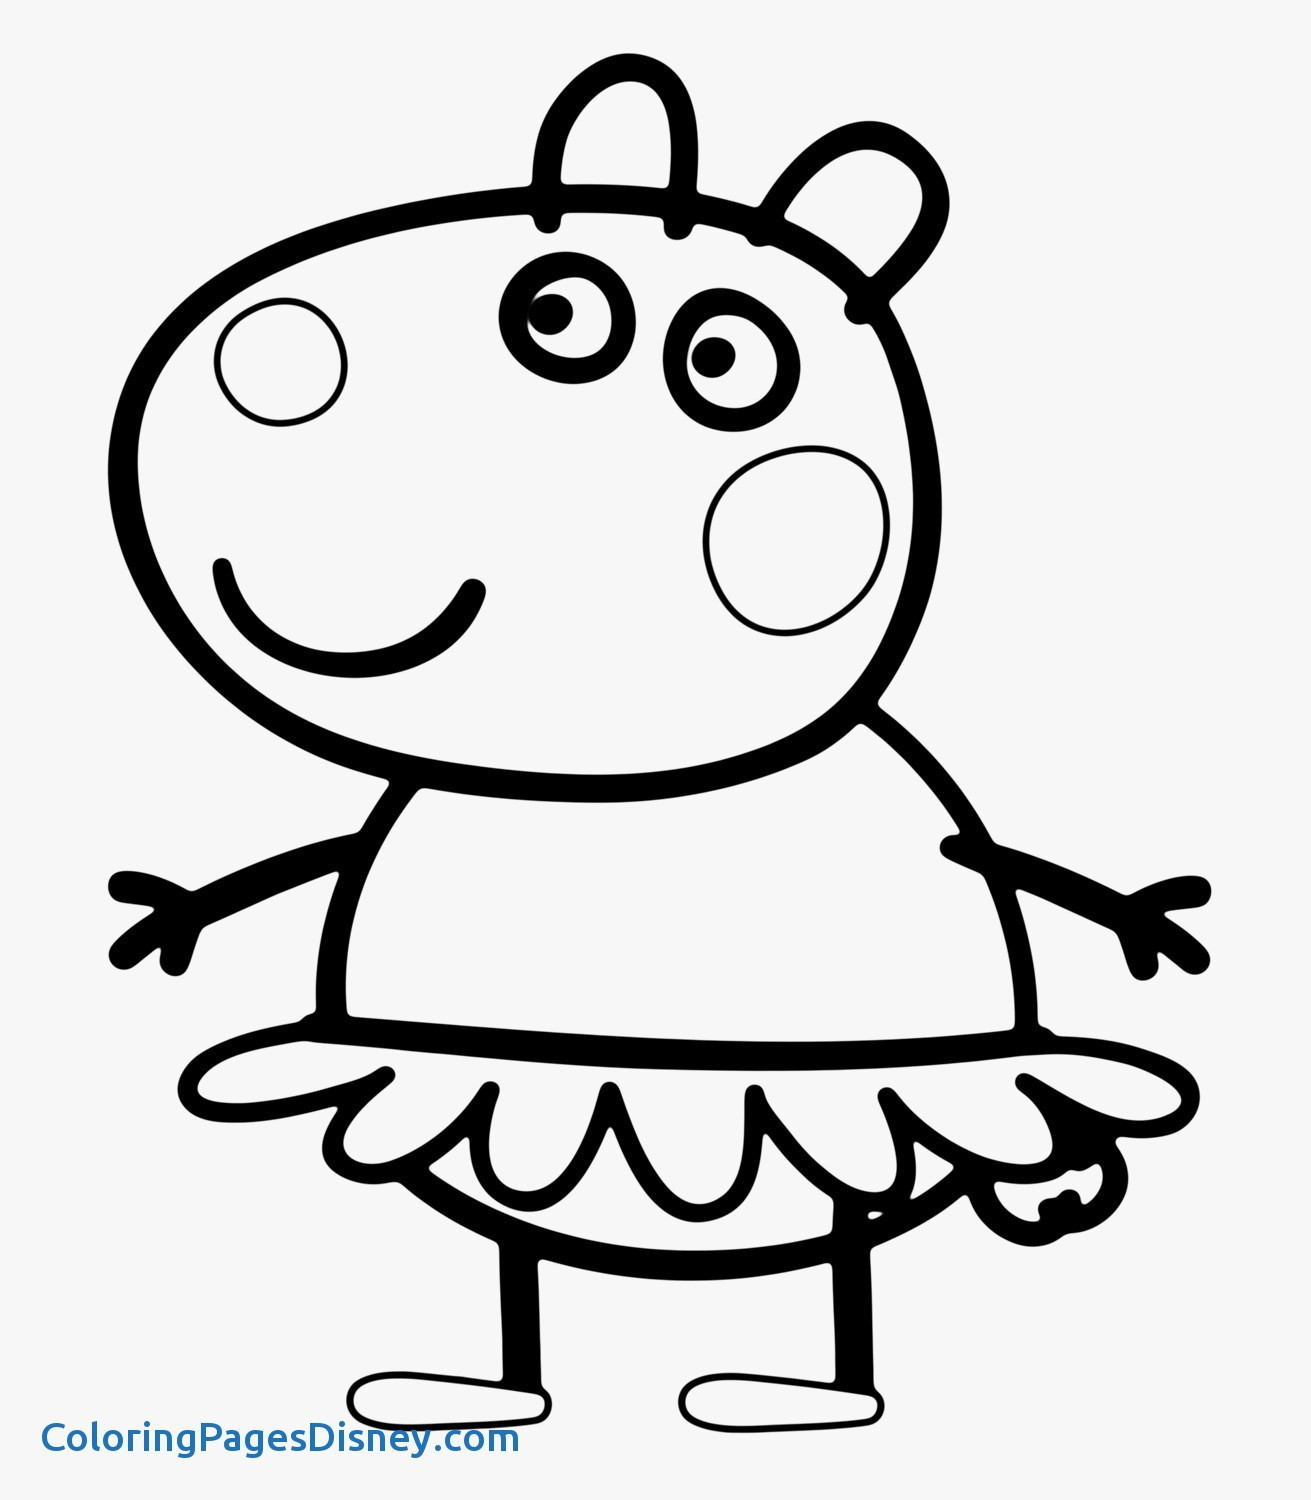 peppa-pig-coloring-pages-suzy-sheep-of-peppa-pig-coloring-pages-suzy-sheep Peppa Pig Coloring Pages Suzy Sheep Cartoon